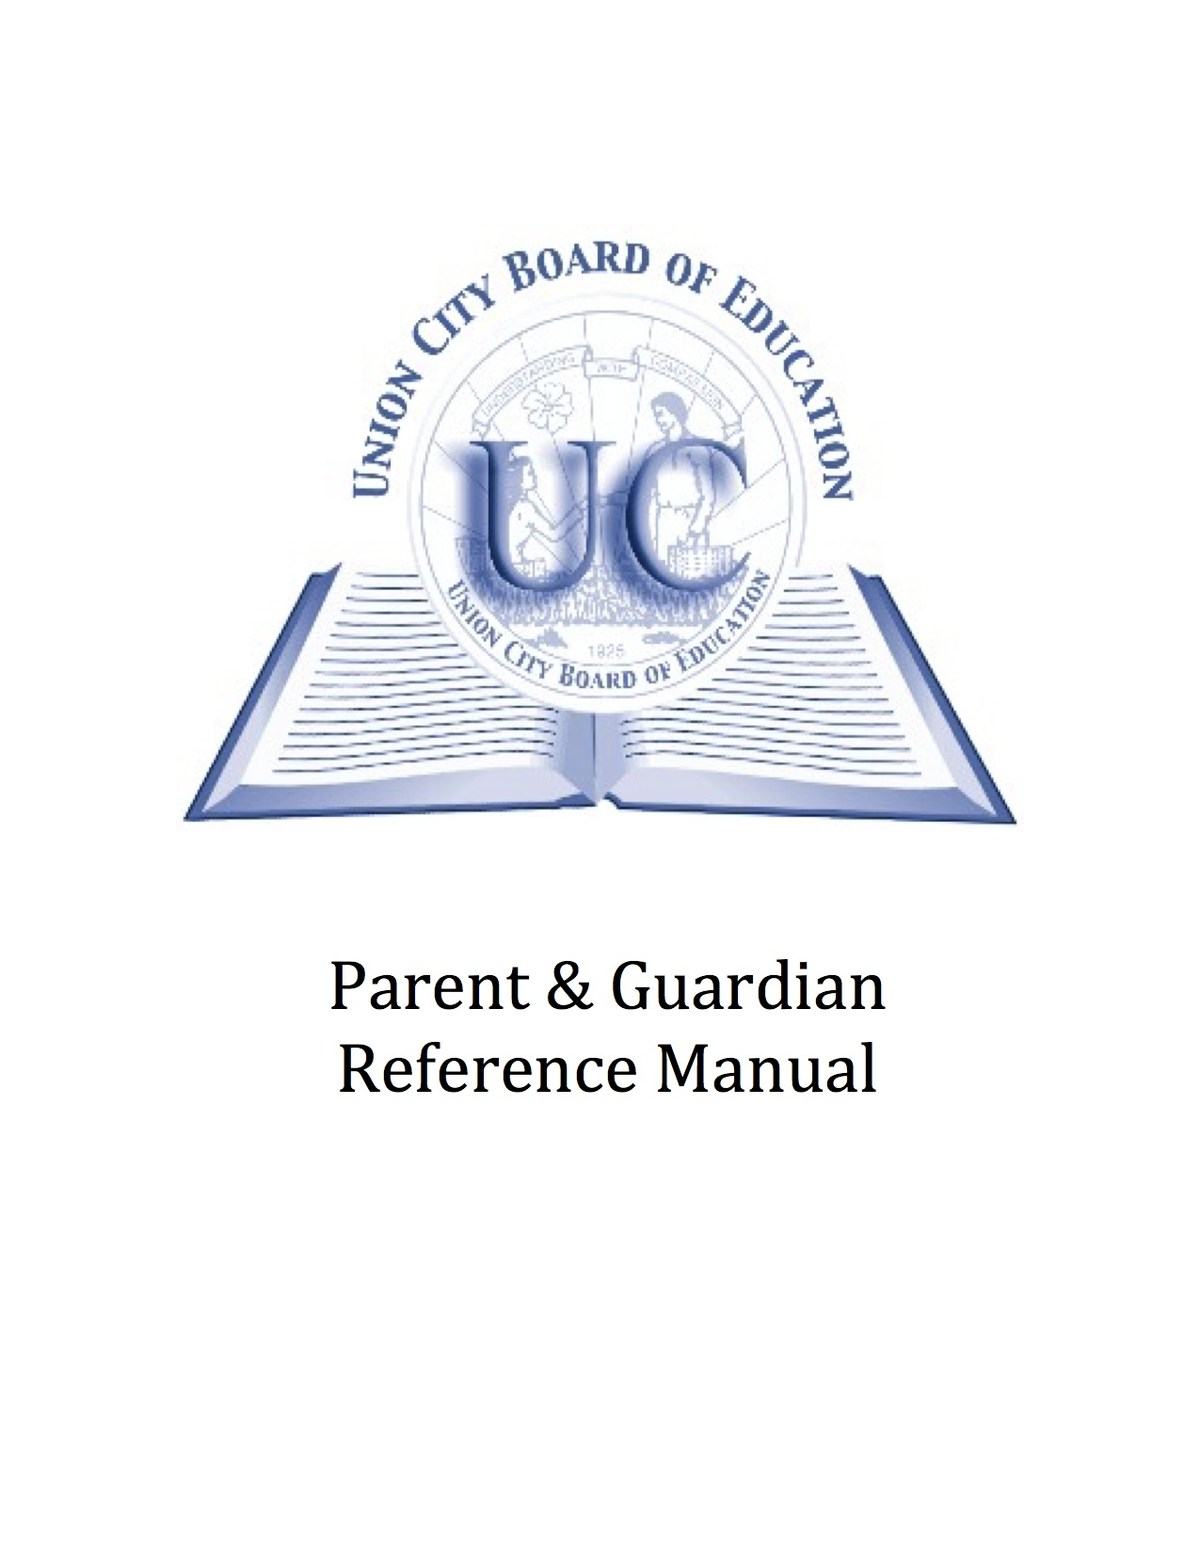 parent & guardian reference manual cover sheet